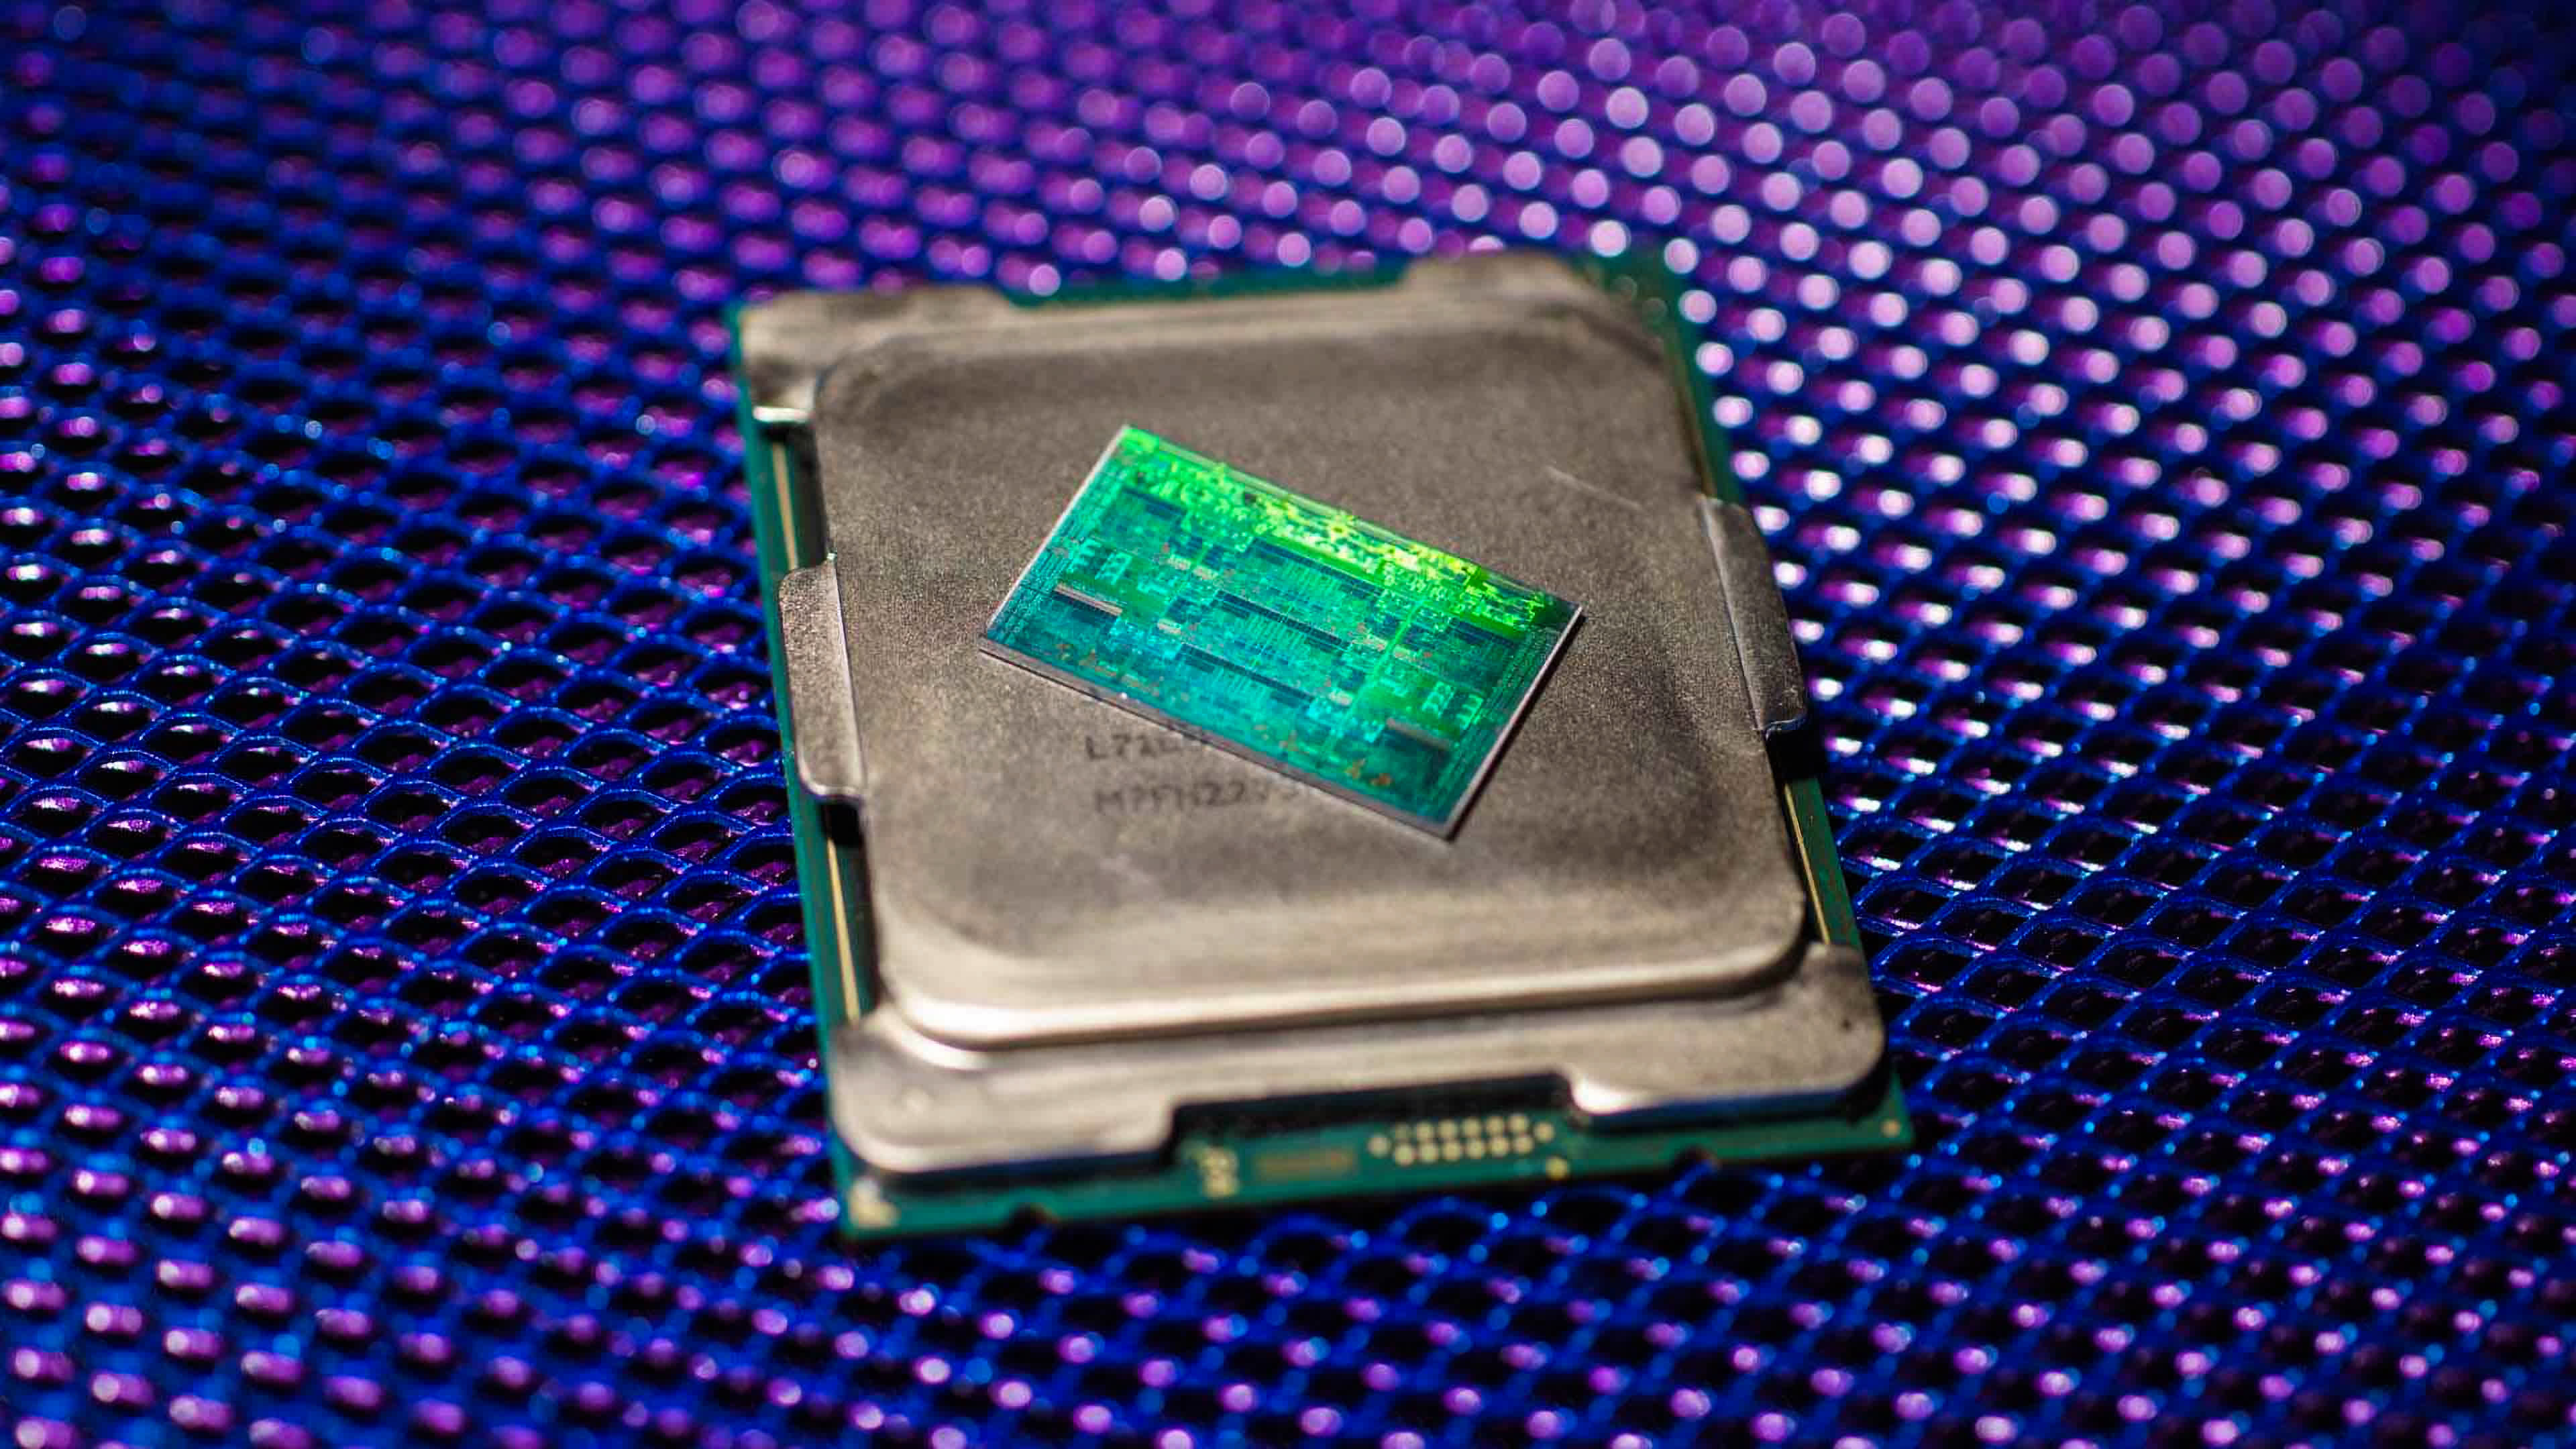 Intel's Core i9-12900K beats Ryzen 9 5950X by 39% in Ashes of the Singularity